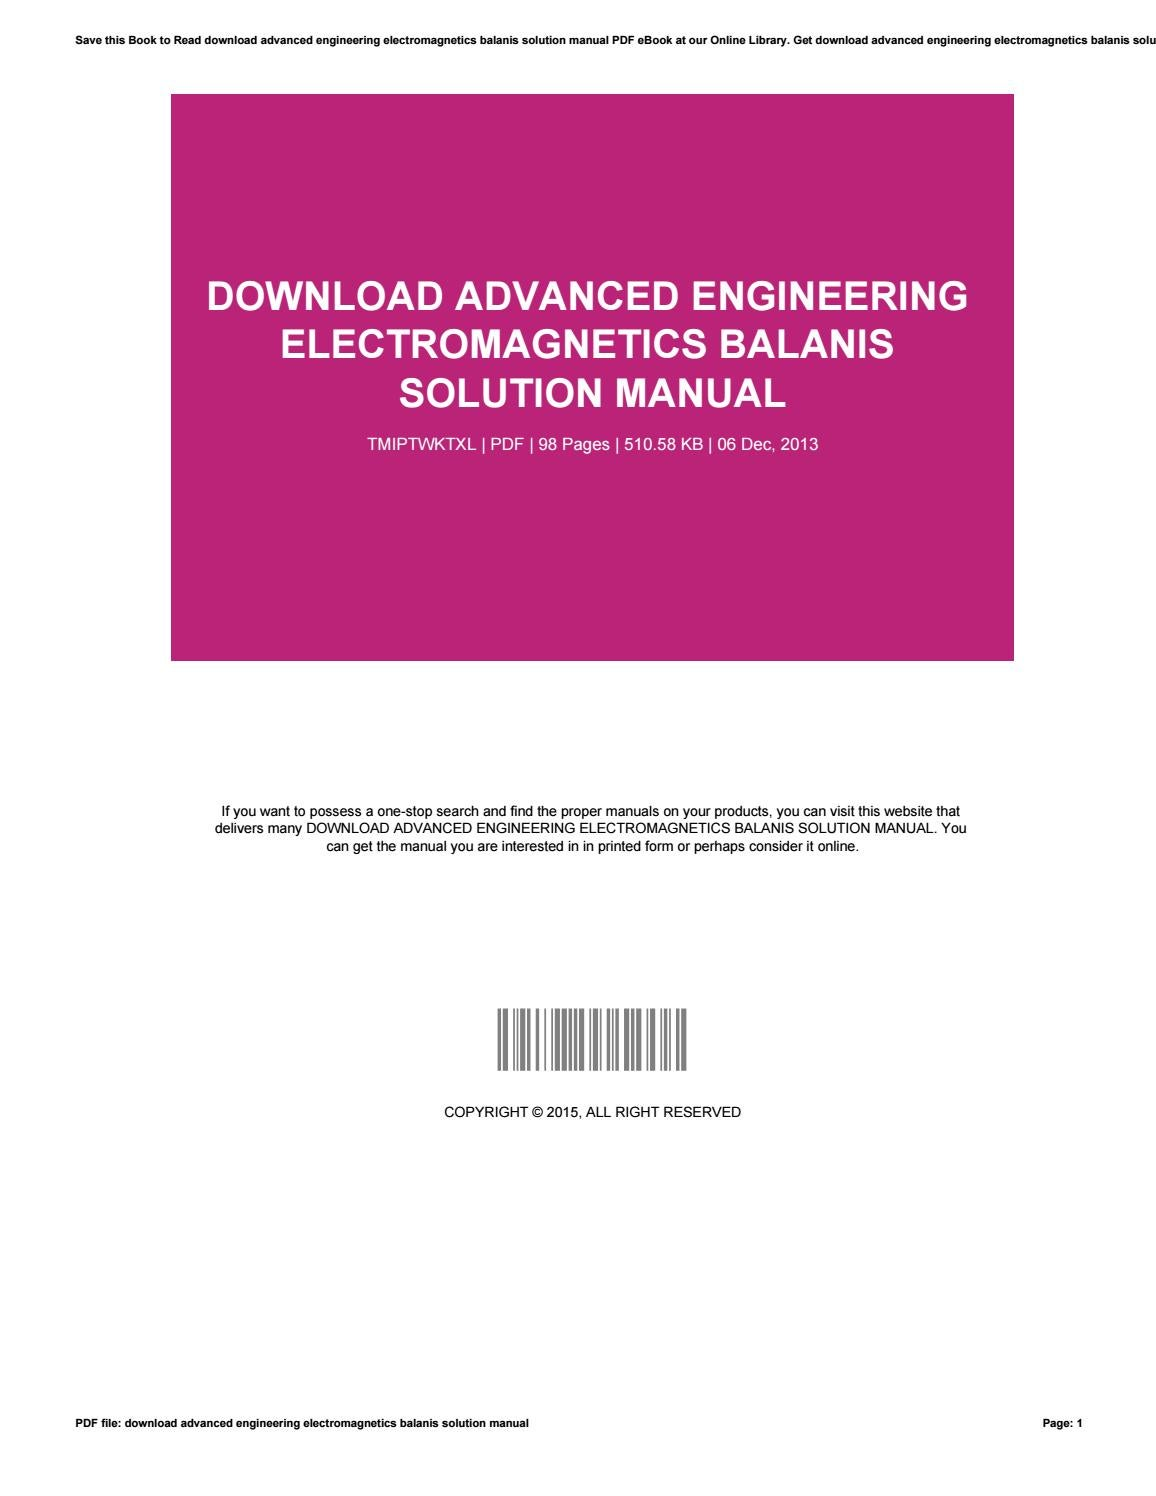 Download advanced engineering electromagnetics balanis solution manual by  DouglasBeall2818 - issuu